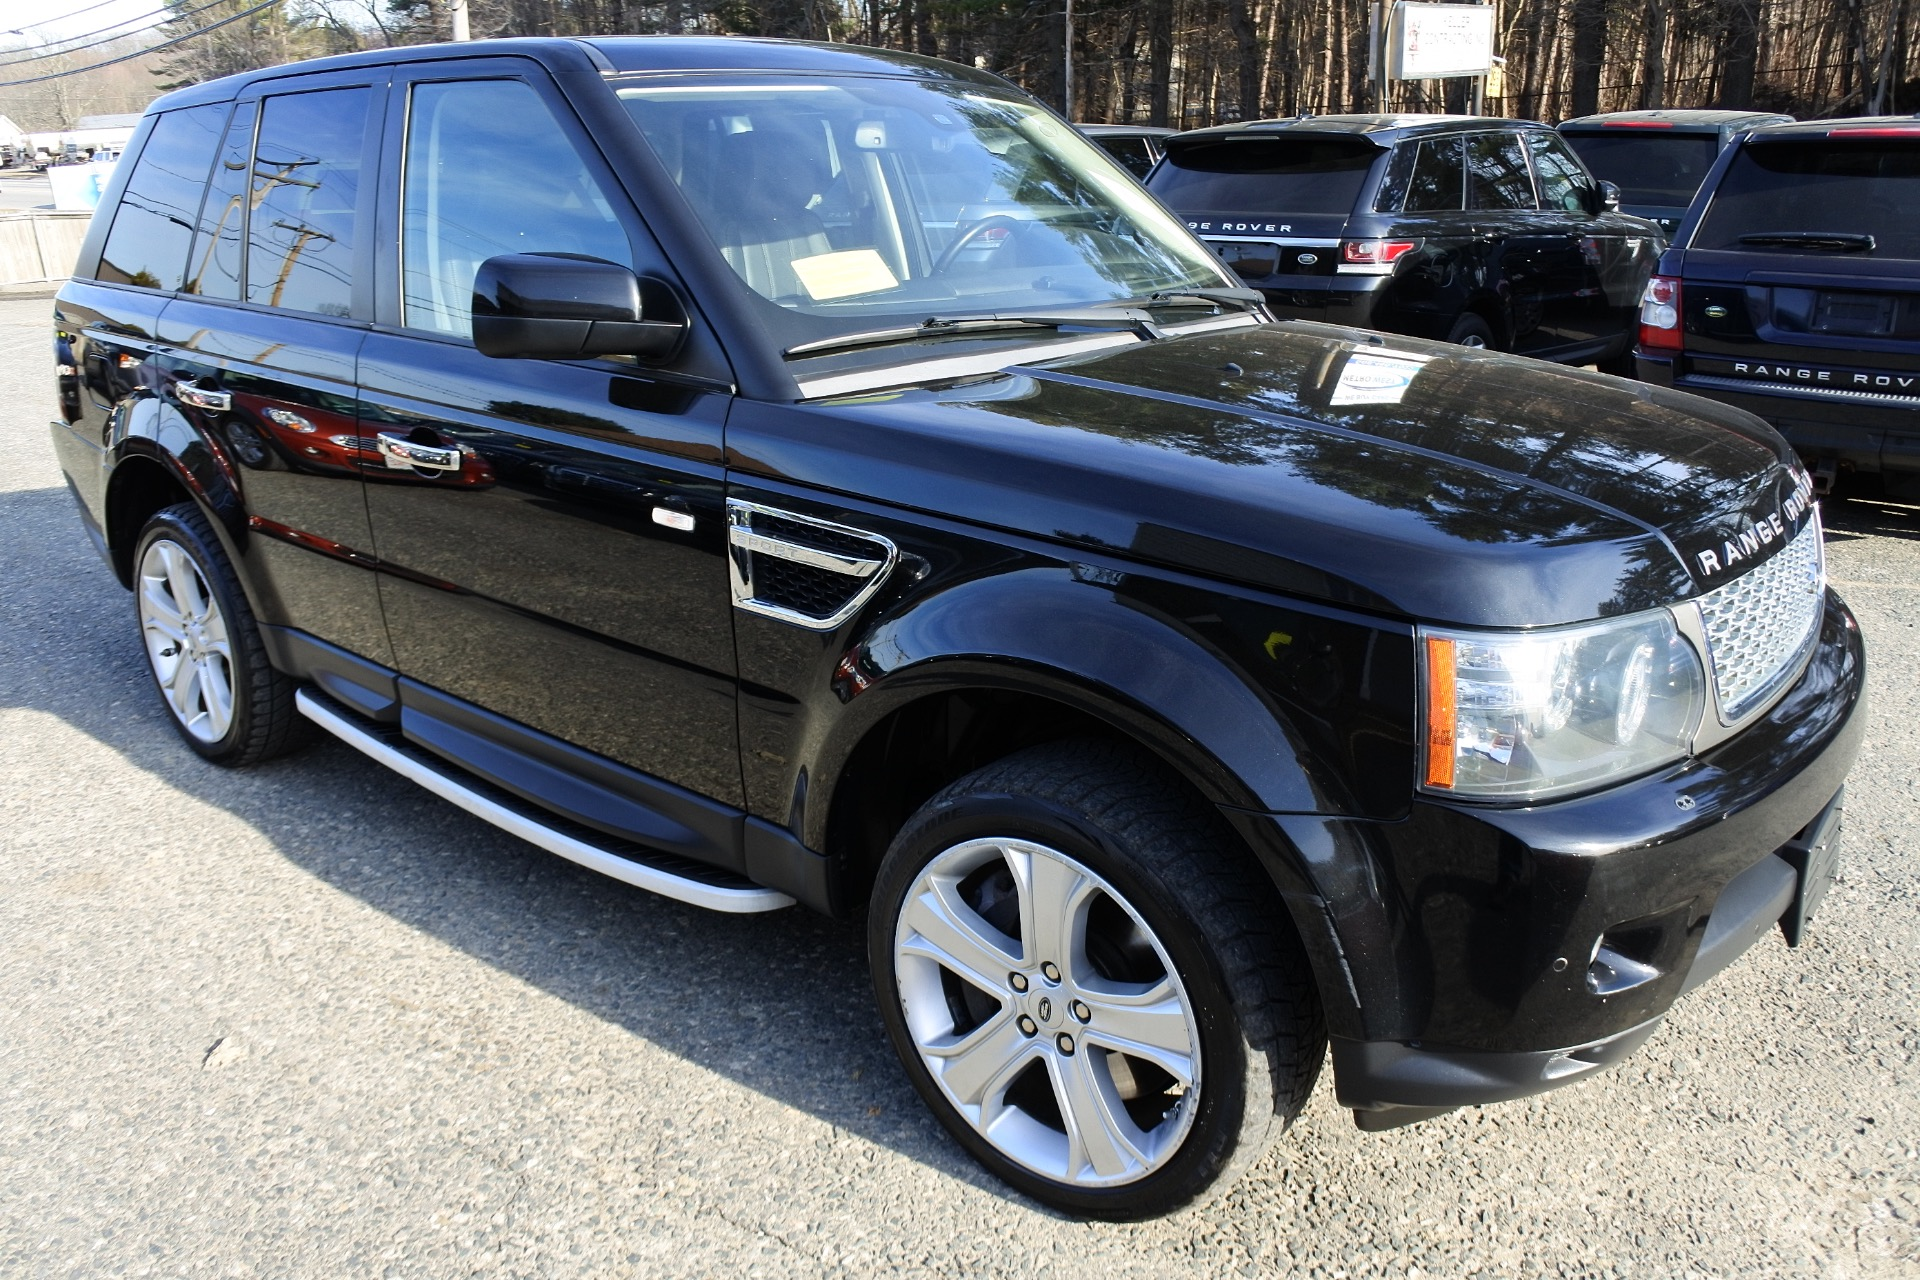 Used 2010 Land Rover Range Rover Sport Supercharged Used 2010 Land Rover Range Rover Sport Supercharged for sale  at Metro West Motorcars LLC in Shrewsbury MA 7